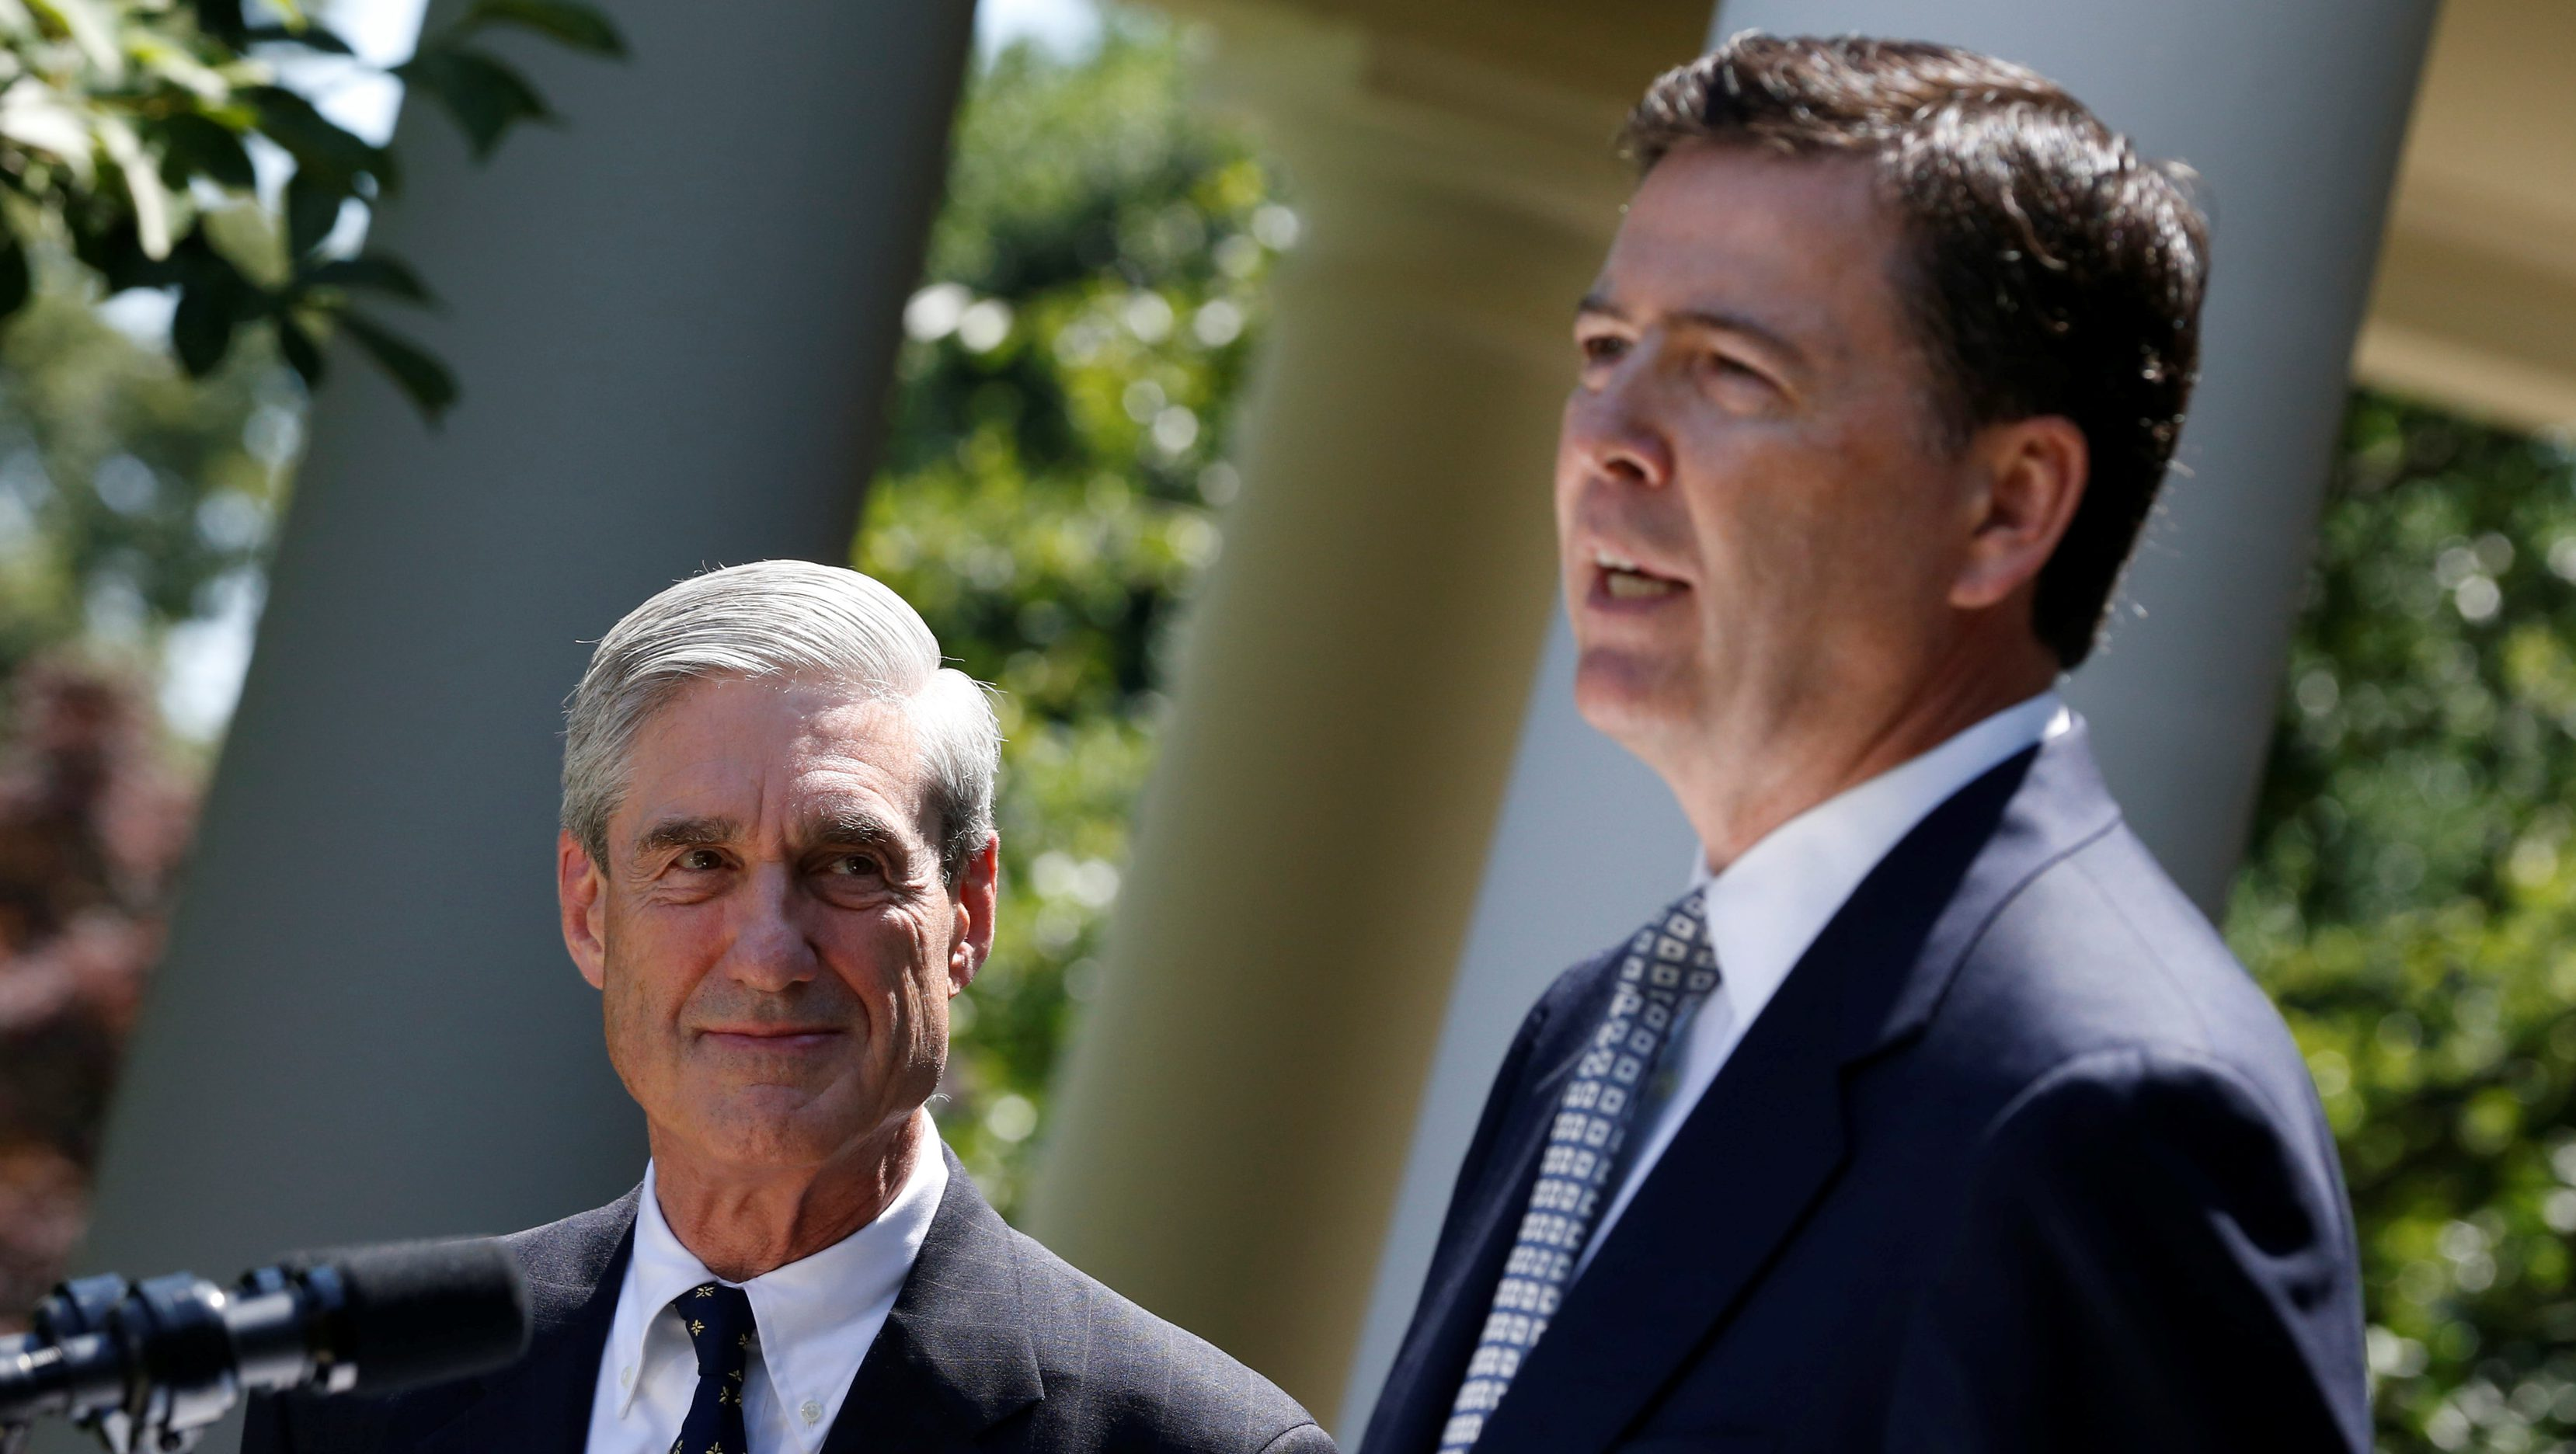 FILE PHOTO: James Comey speaks alongside outgoing FBI Director Robert Mueller at the White House in Washington